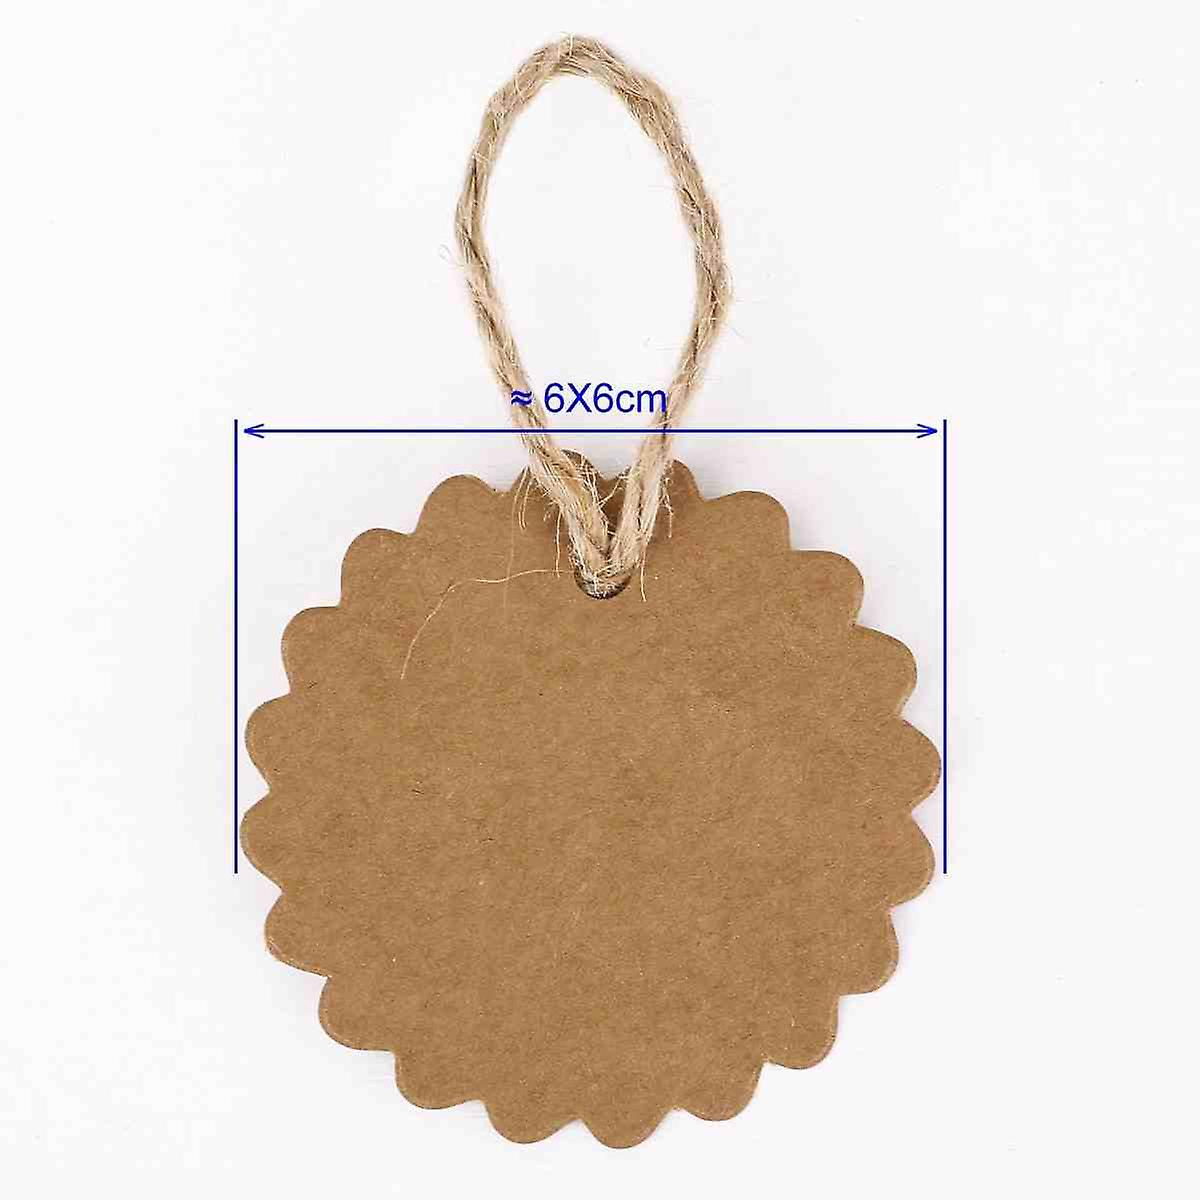 100x Paper Pendants Tags Labels Personalised Tags Party Decoration DIY Tidy Storage + 20m String